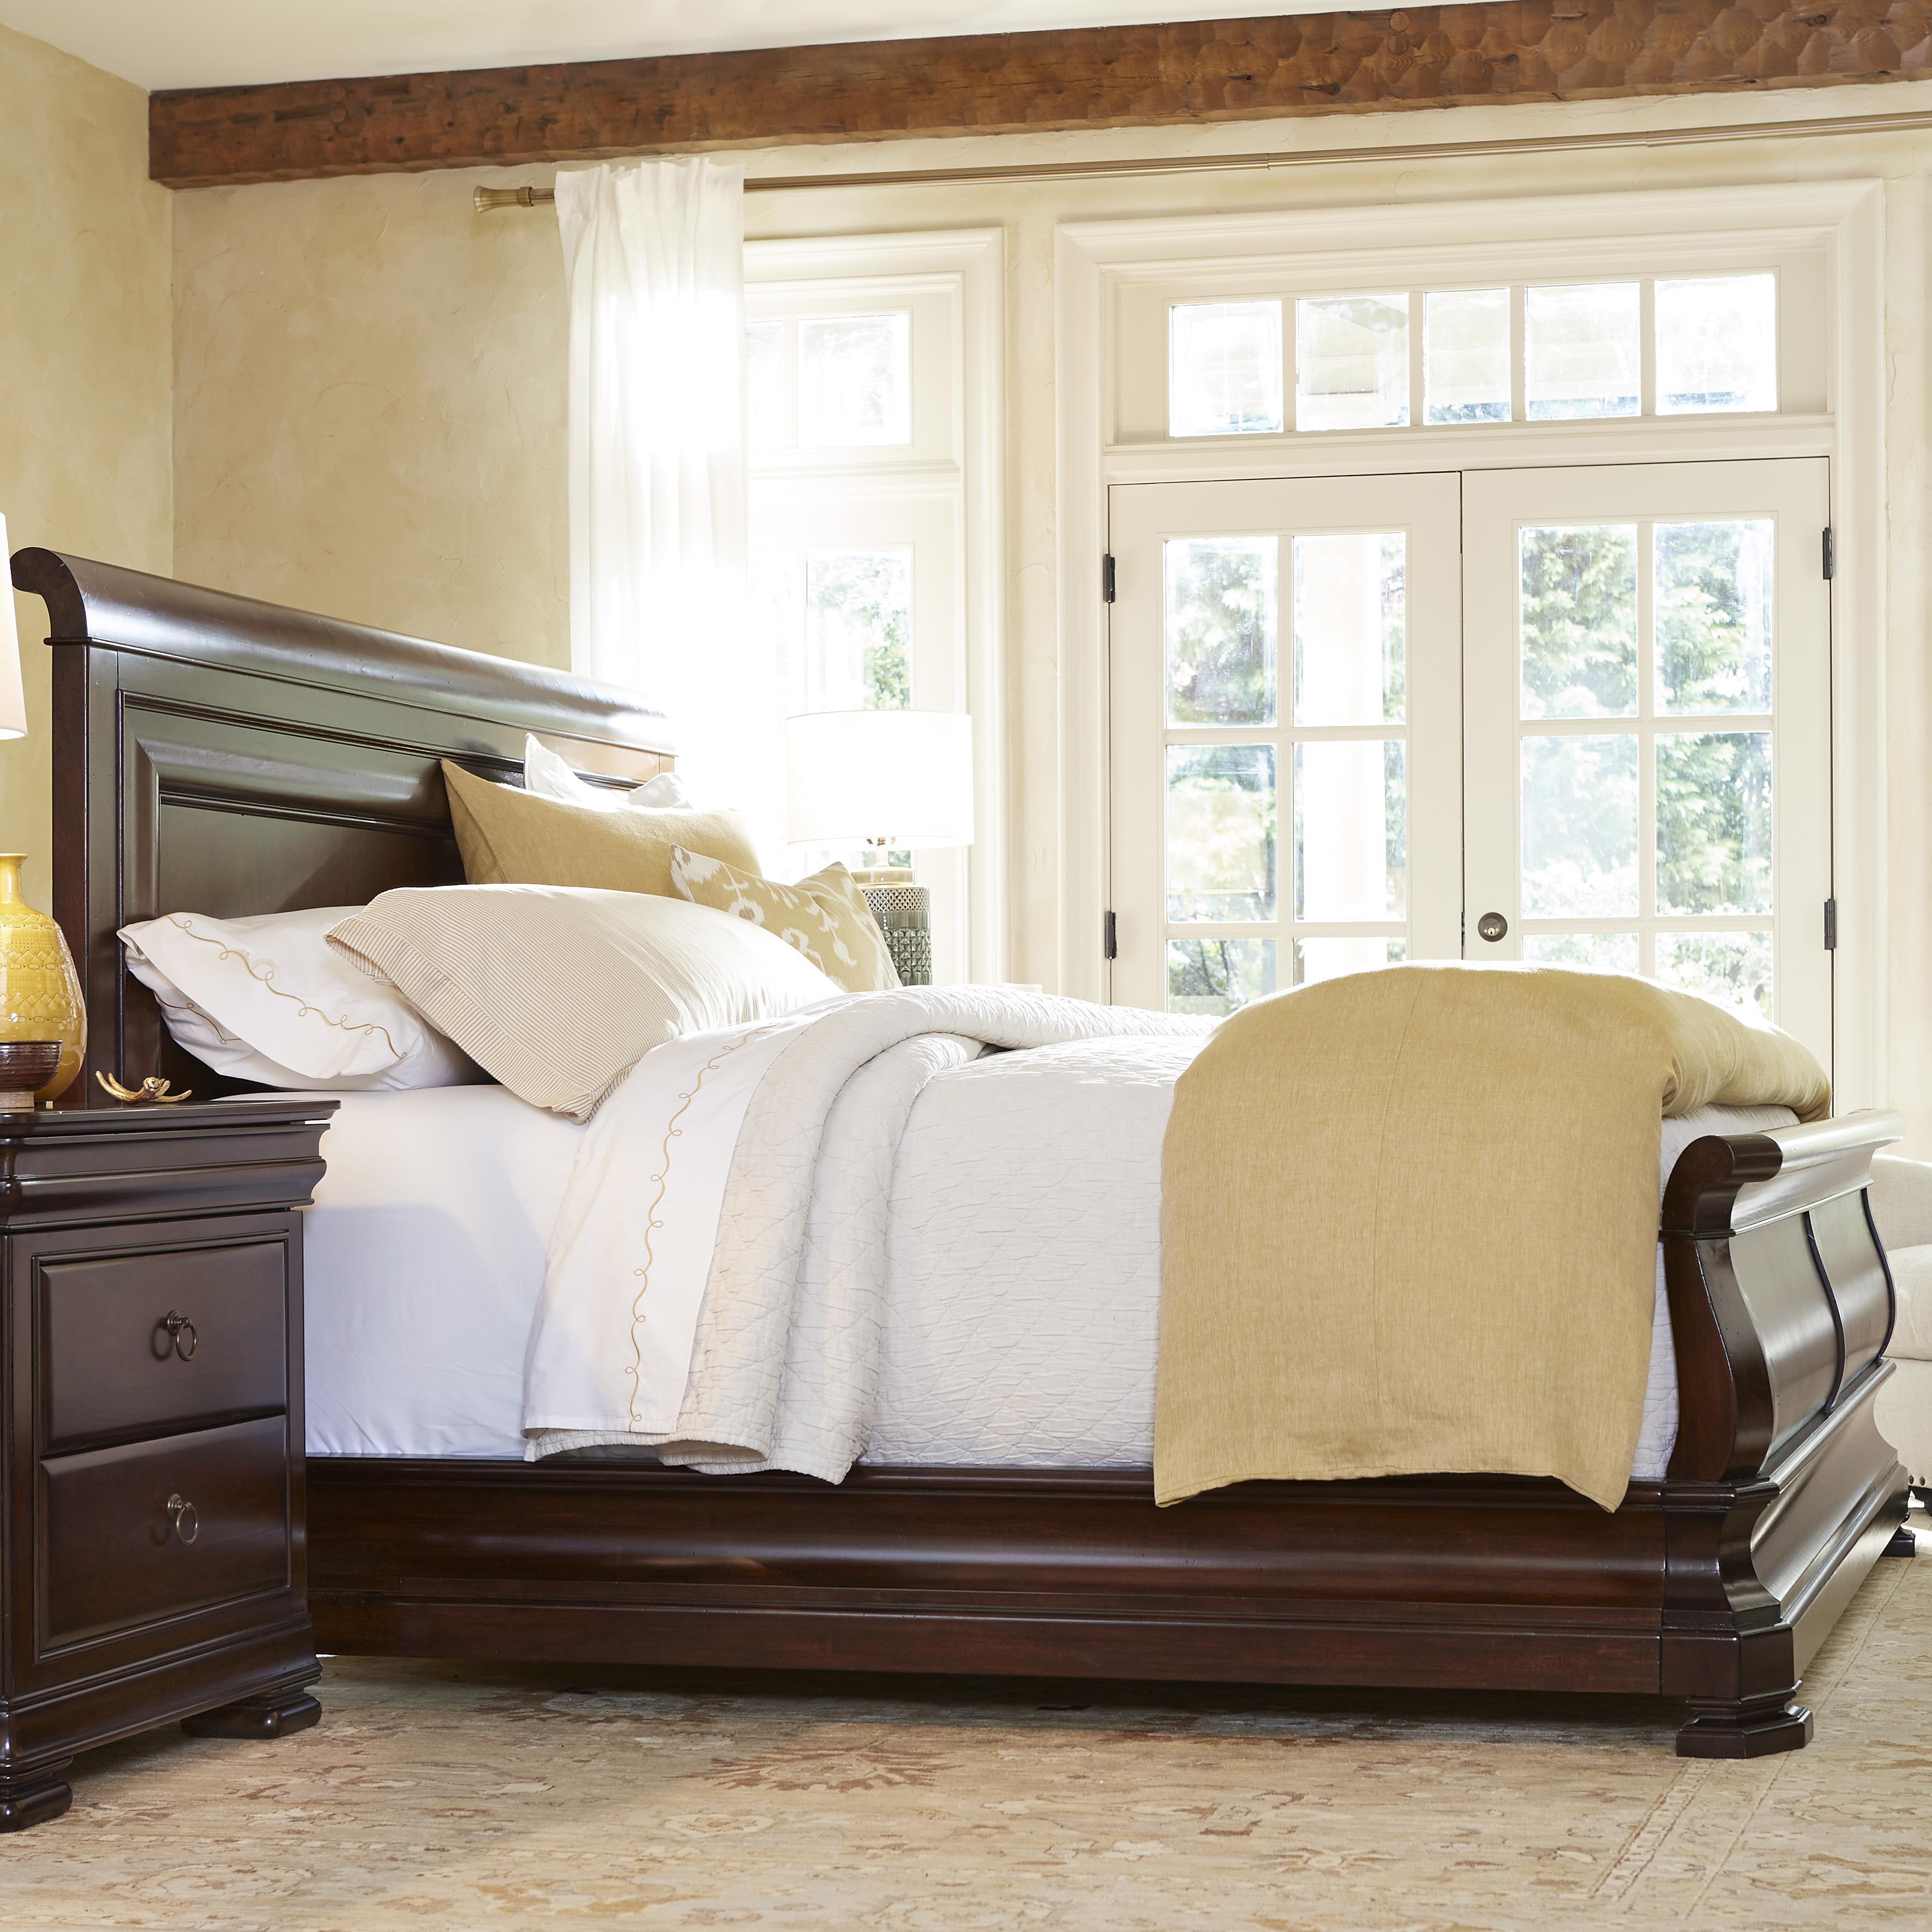 Reprise King Sleigh Bed by Universal at Baer's Furniture